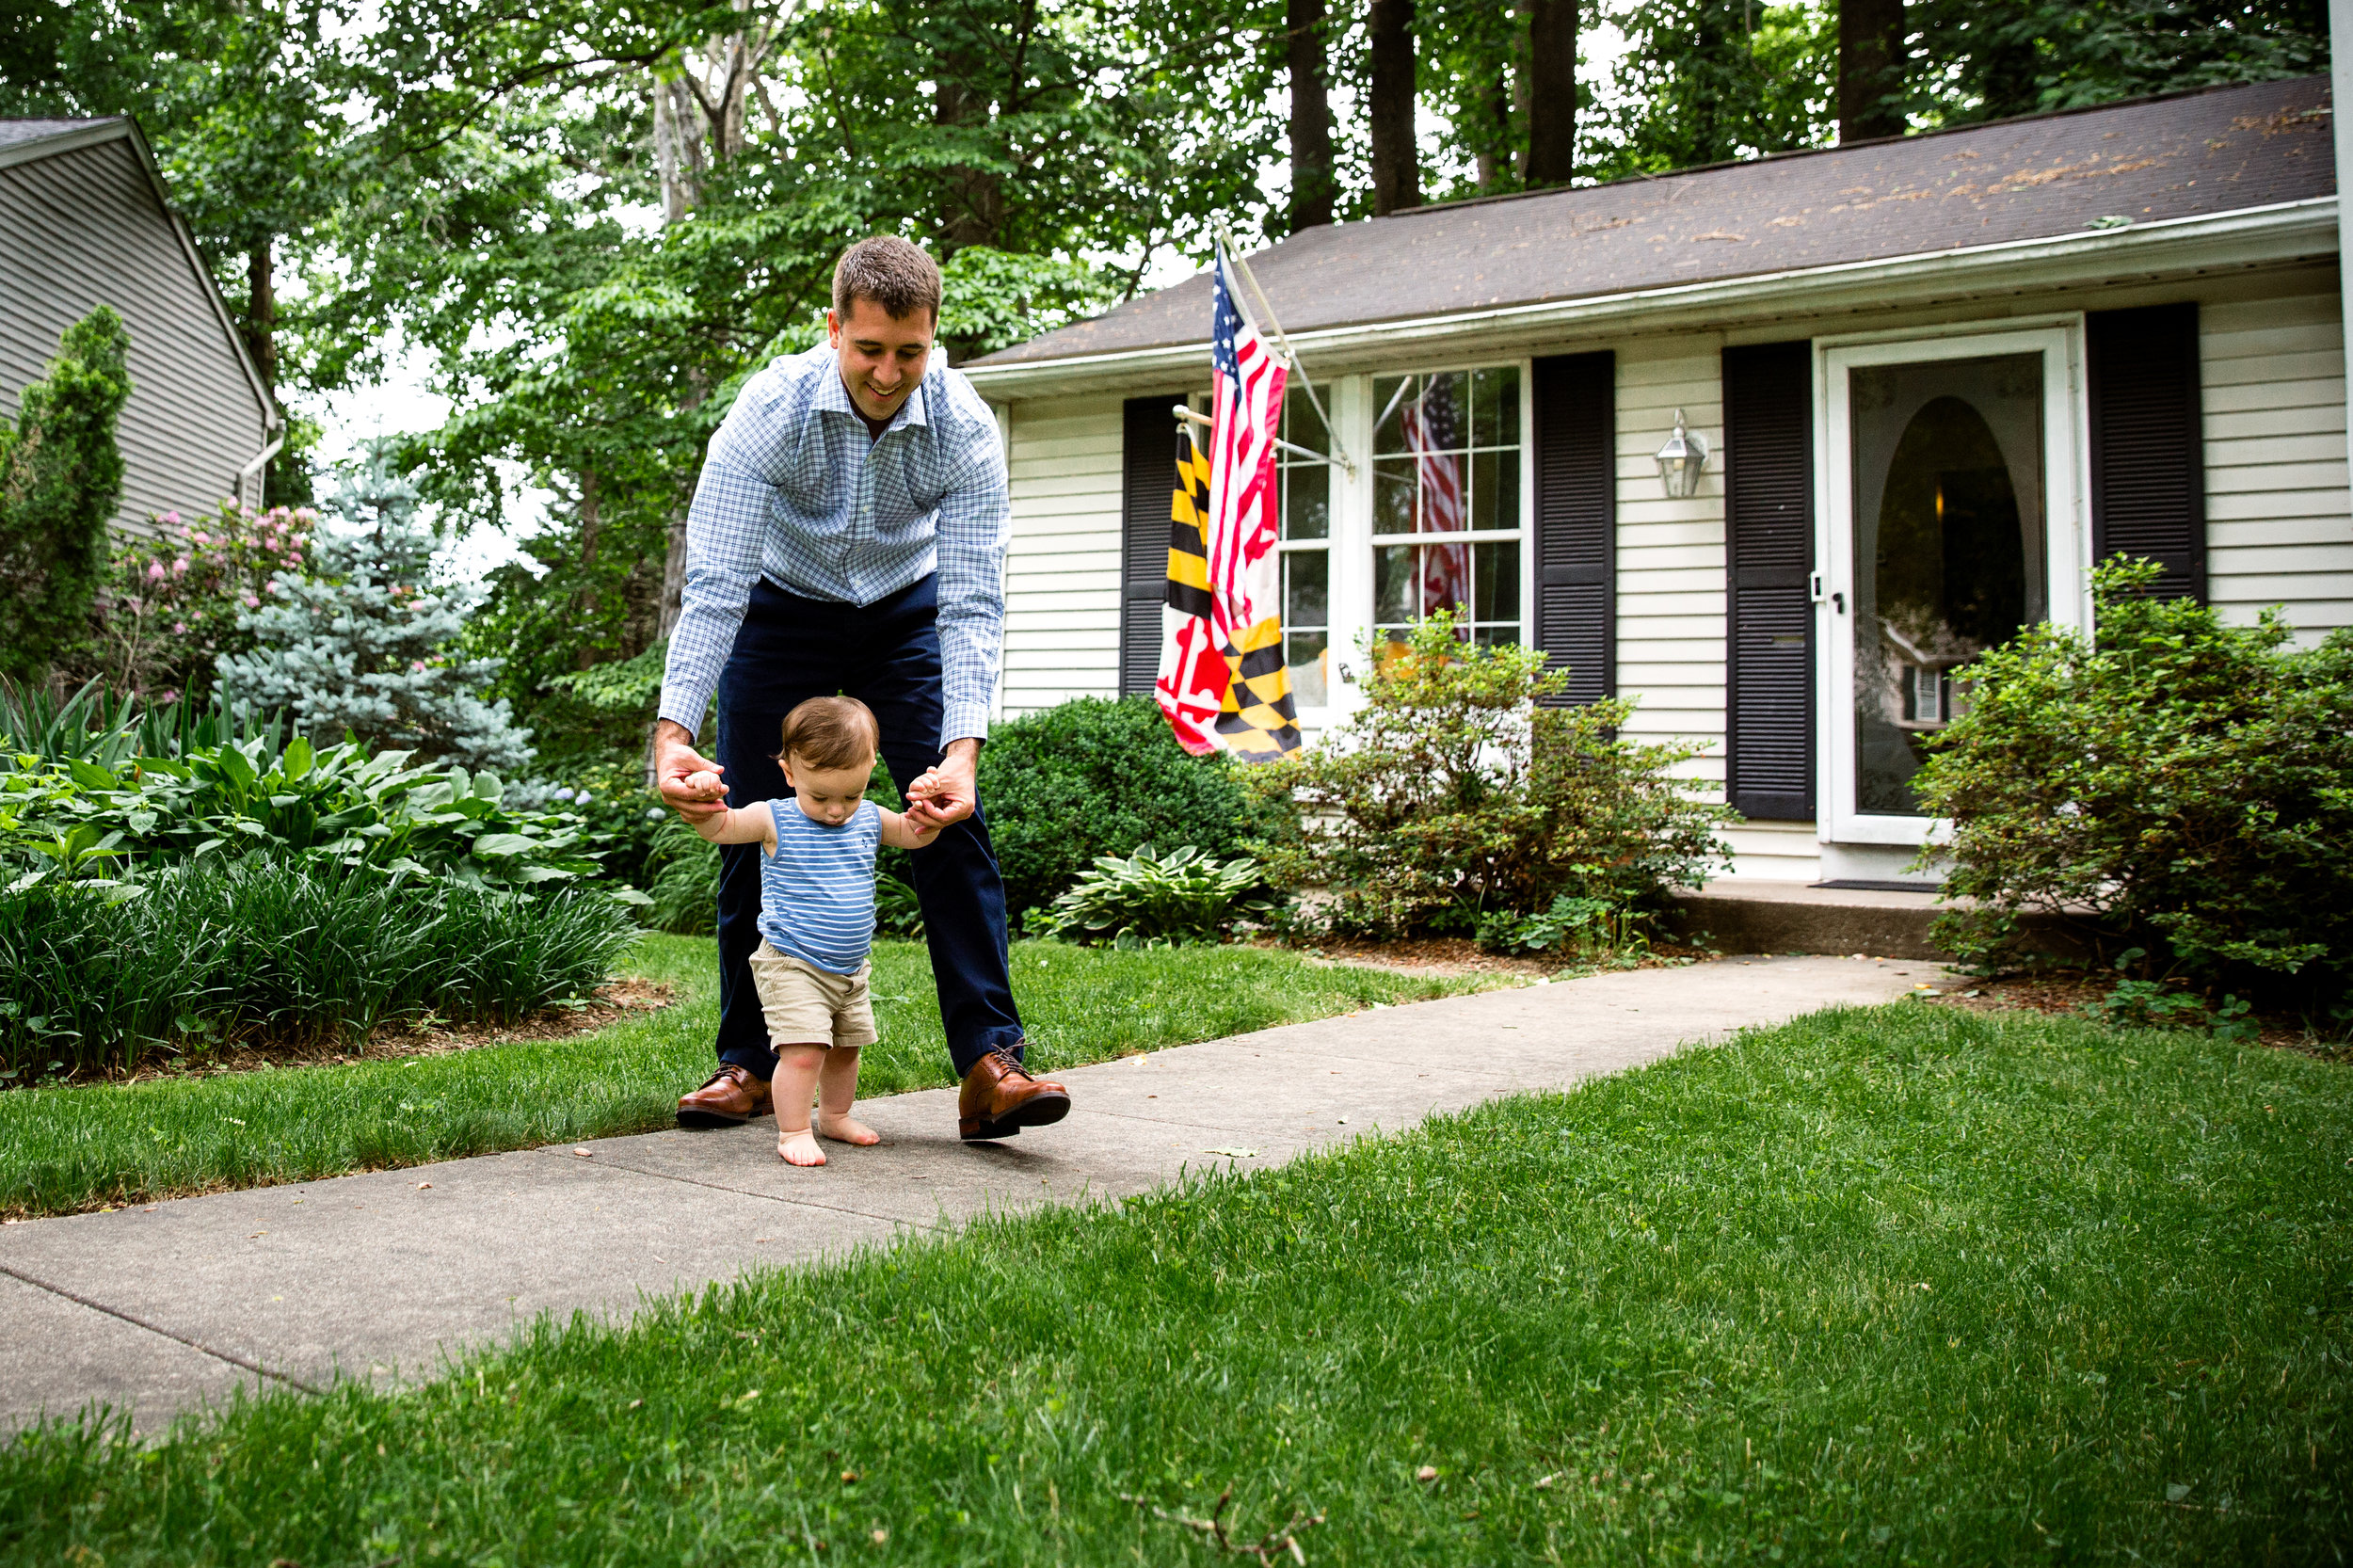 documentary family photograph of dad helping son walk outside grandparent's suburban home